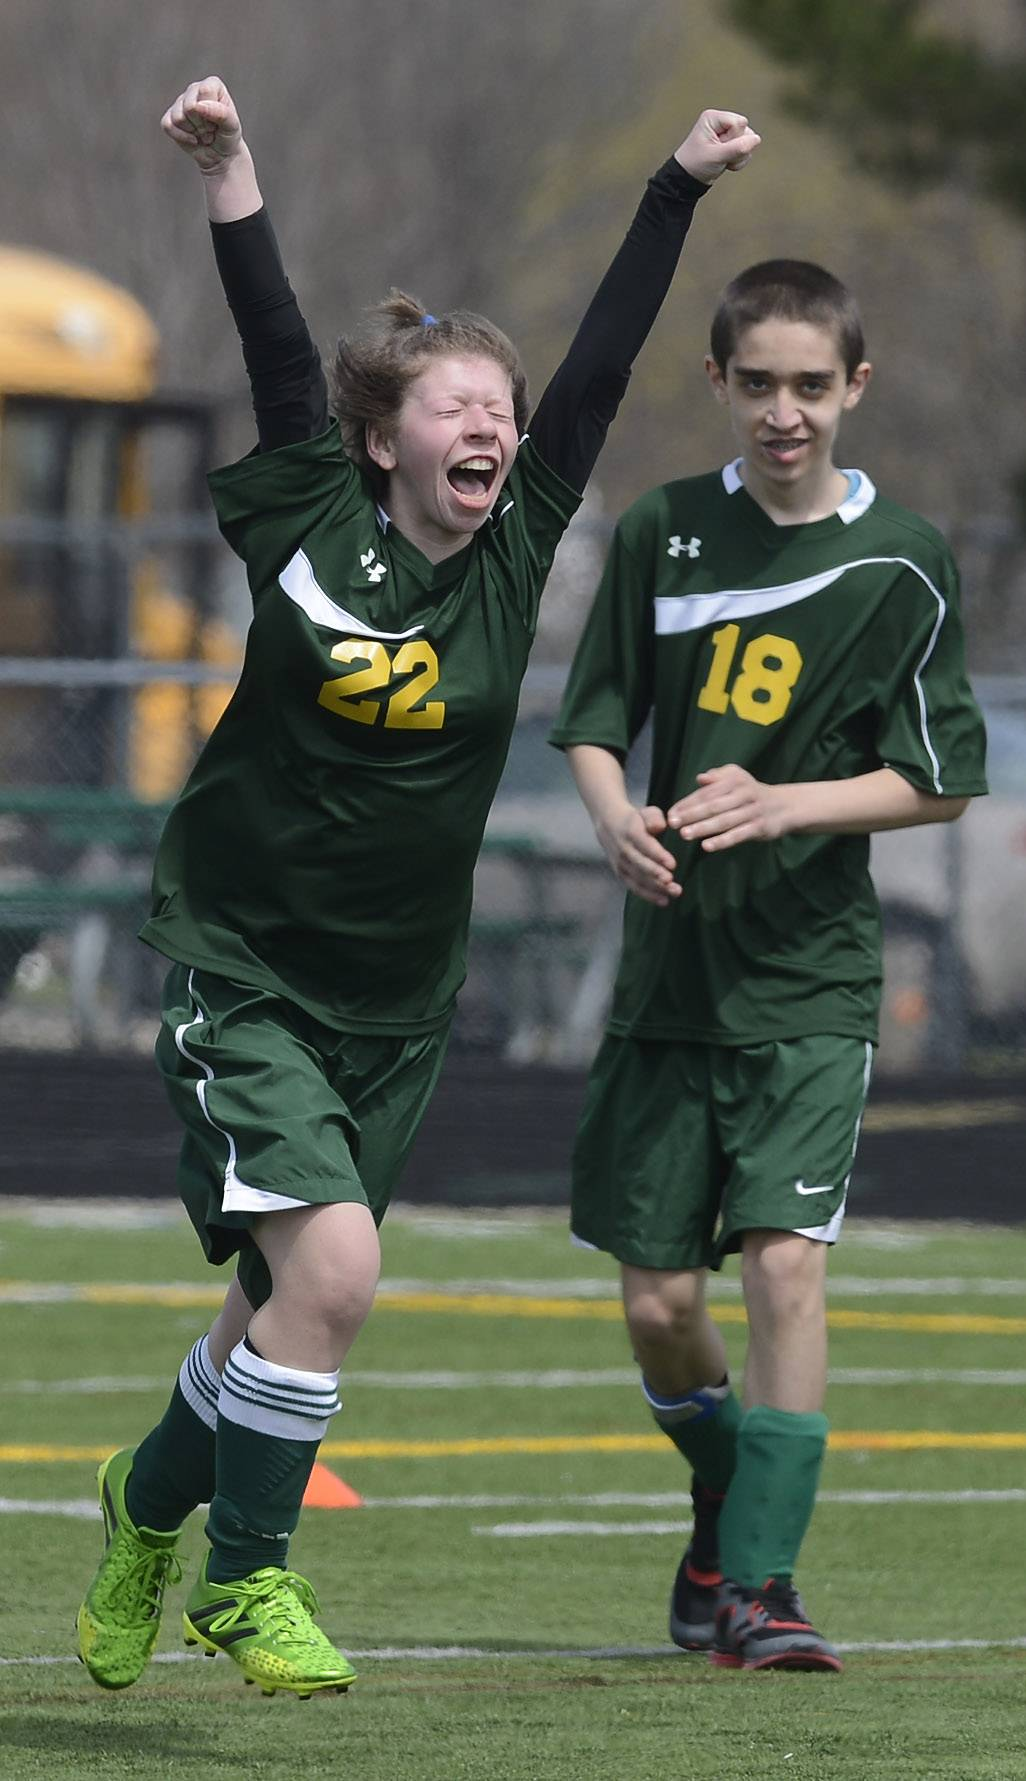 Stevenson's Jennifer Callen celebrates her goal as teammate Daniel Kahn cheers her on during Saturday's Allied Soccer Match against Mundelein in Lincolnshire.